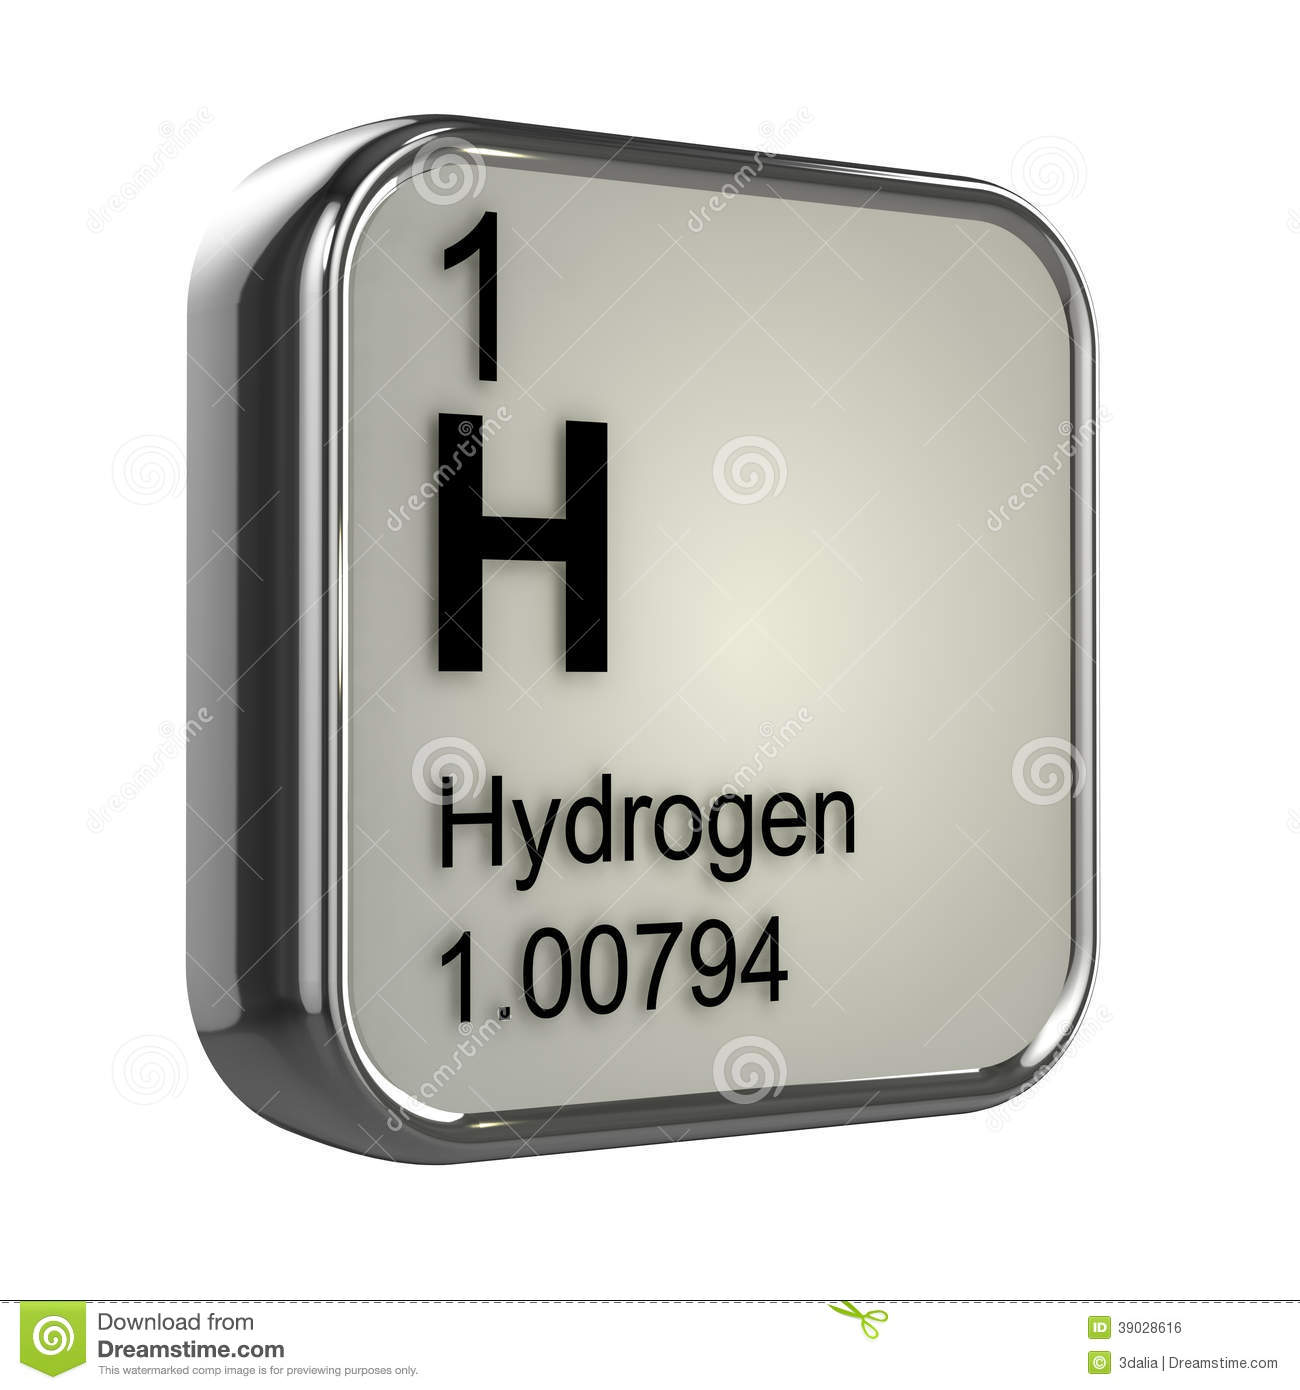 3d render of the hydrogen element from the periodic table.